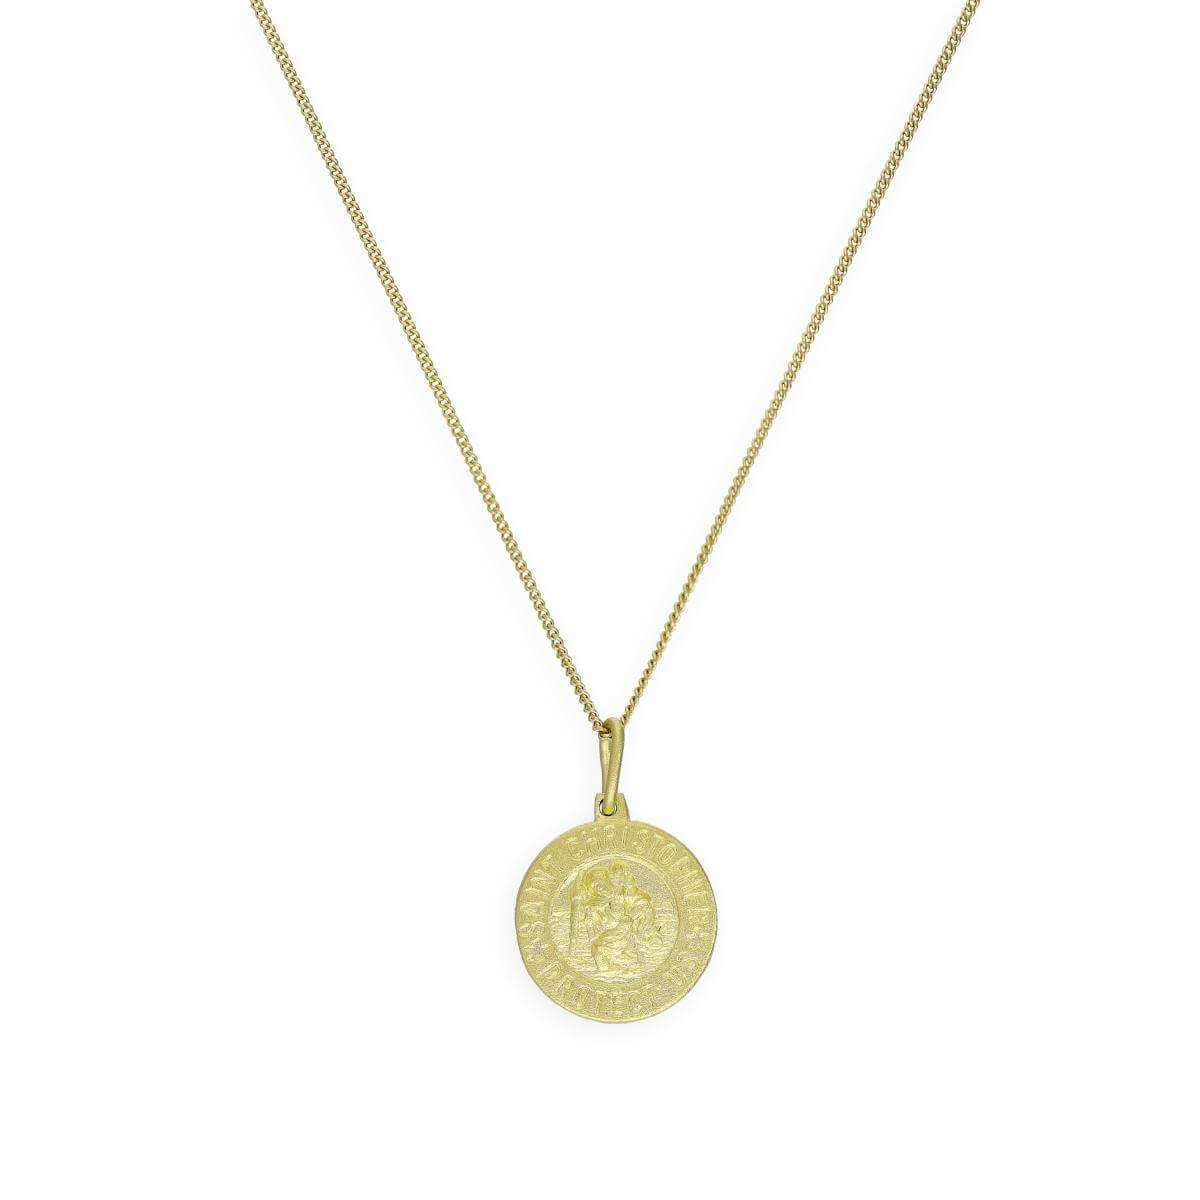 Gold Plated Sterling Silver Saint Christopher Medal on Chain 16 - 32 Inches